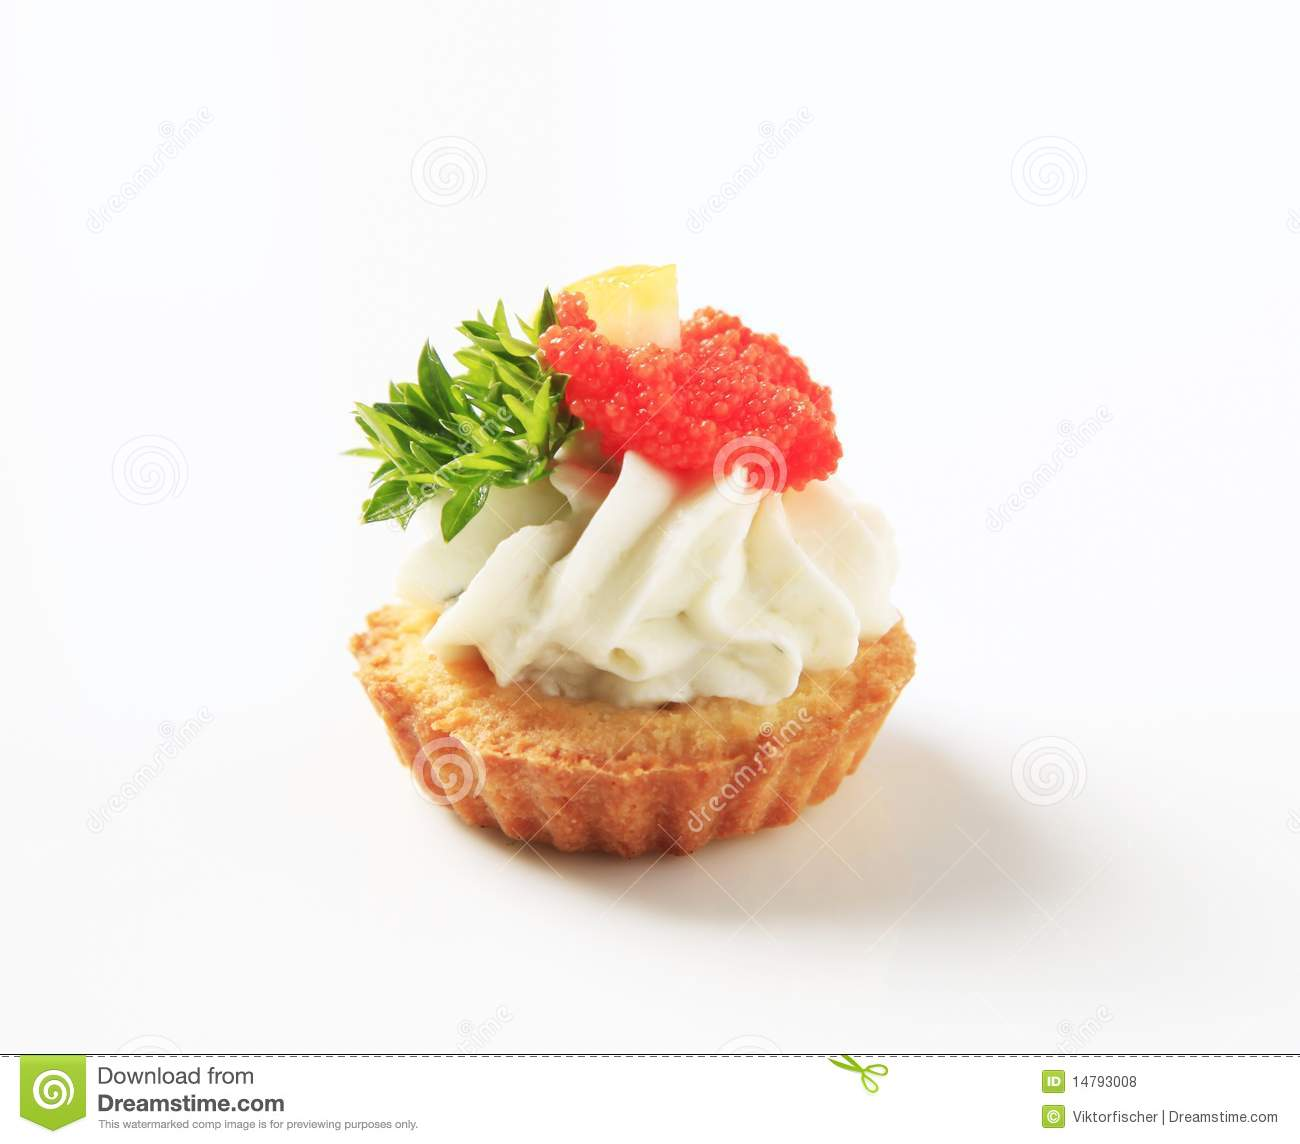 Canape royalty free stock photos image 14793008 for Canape spread